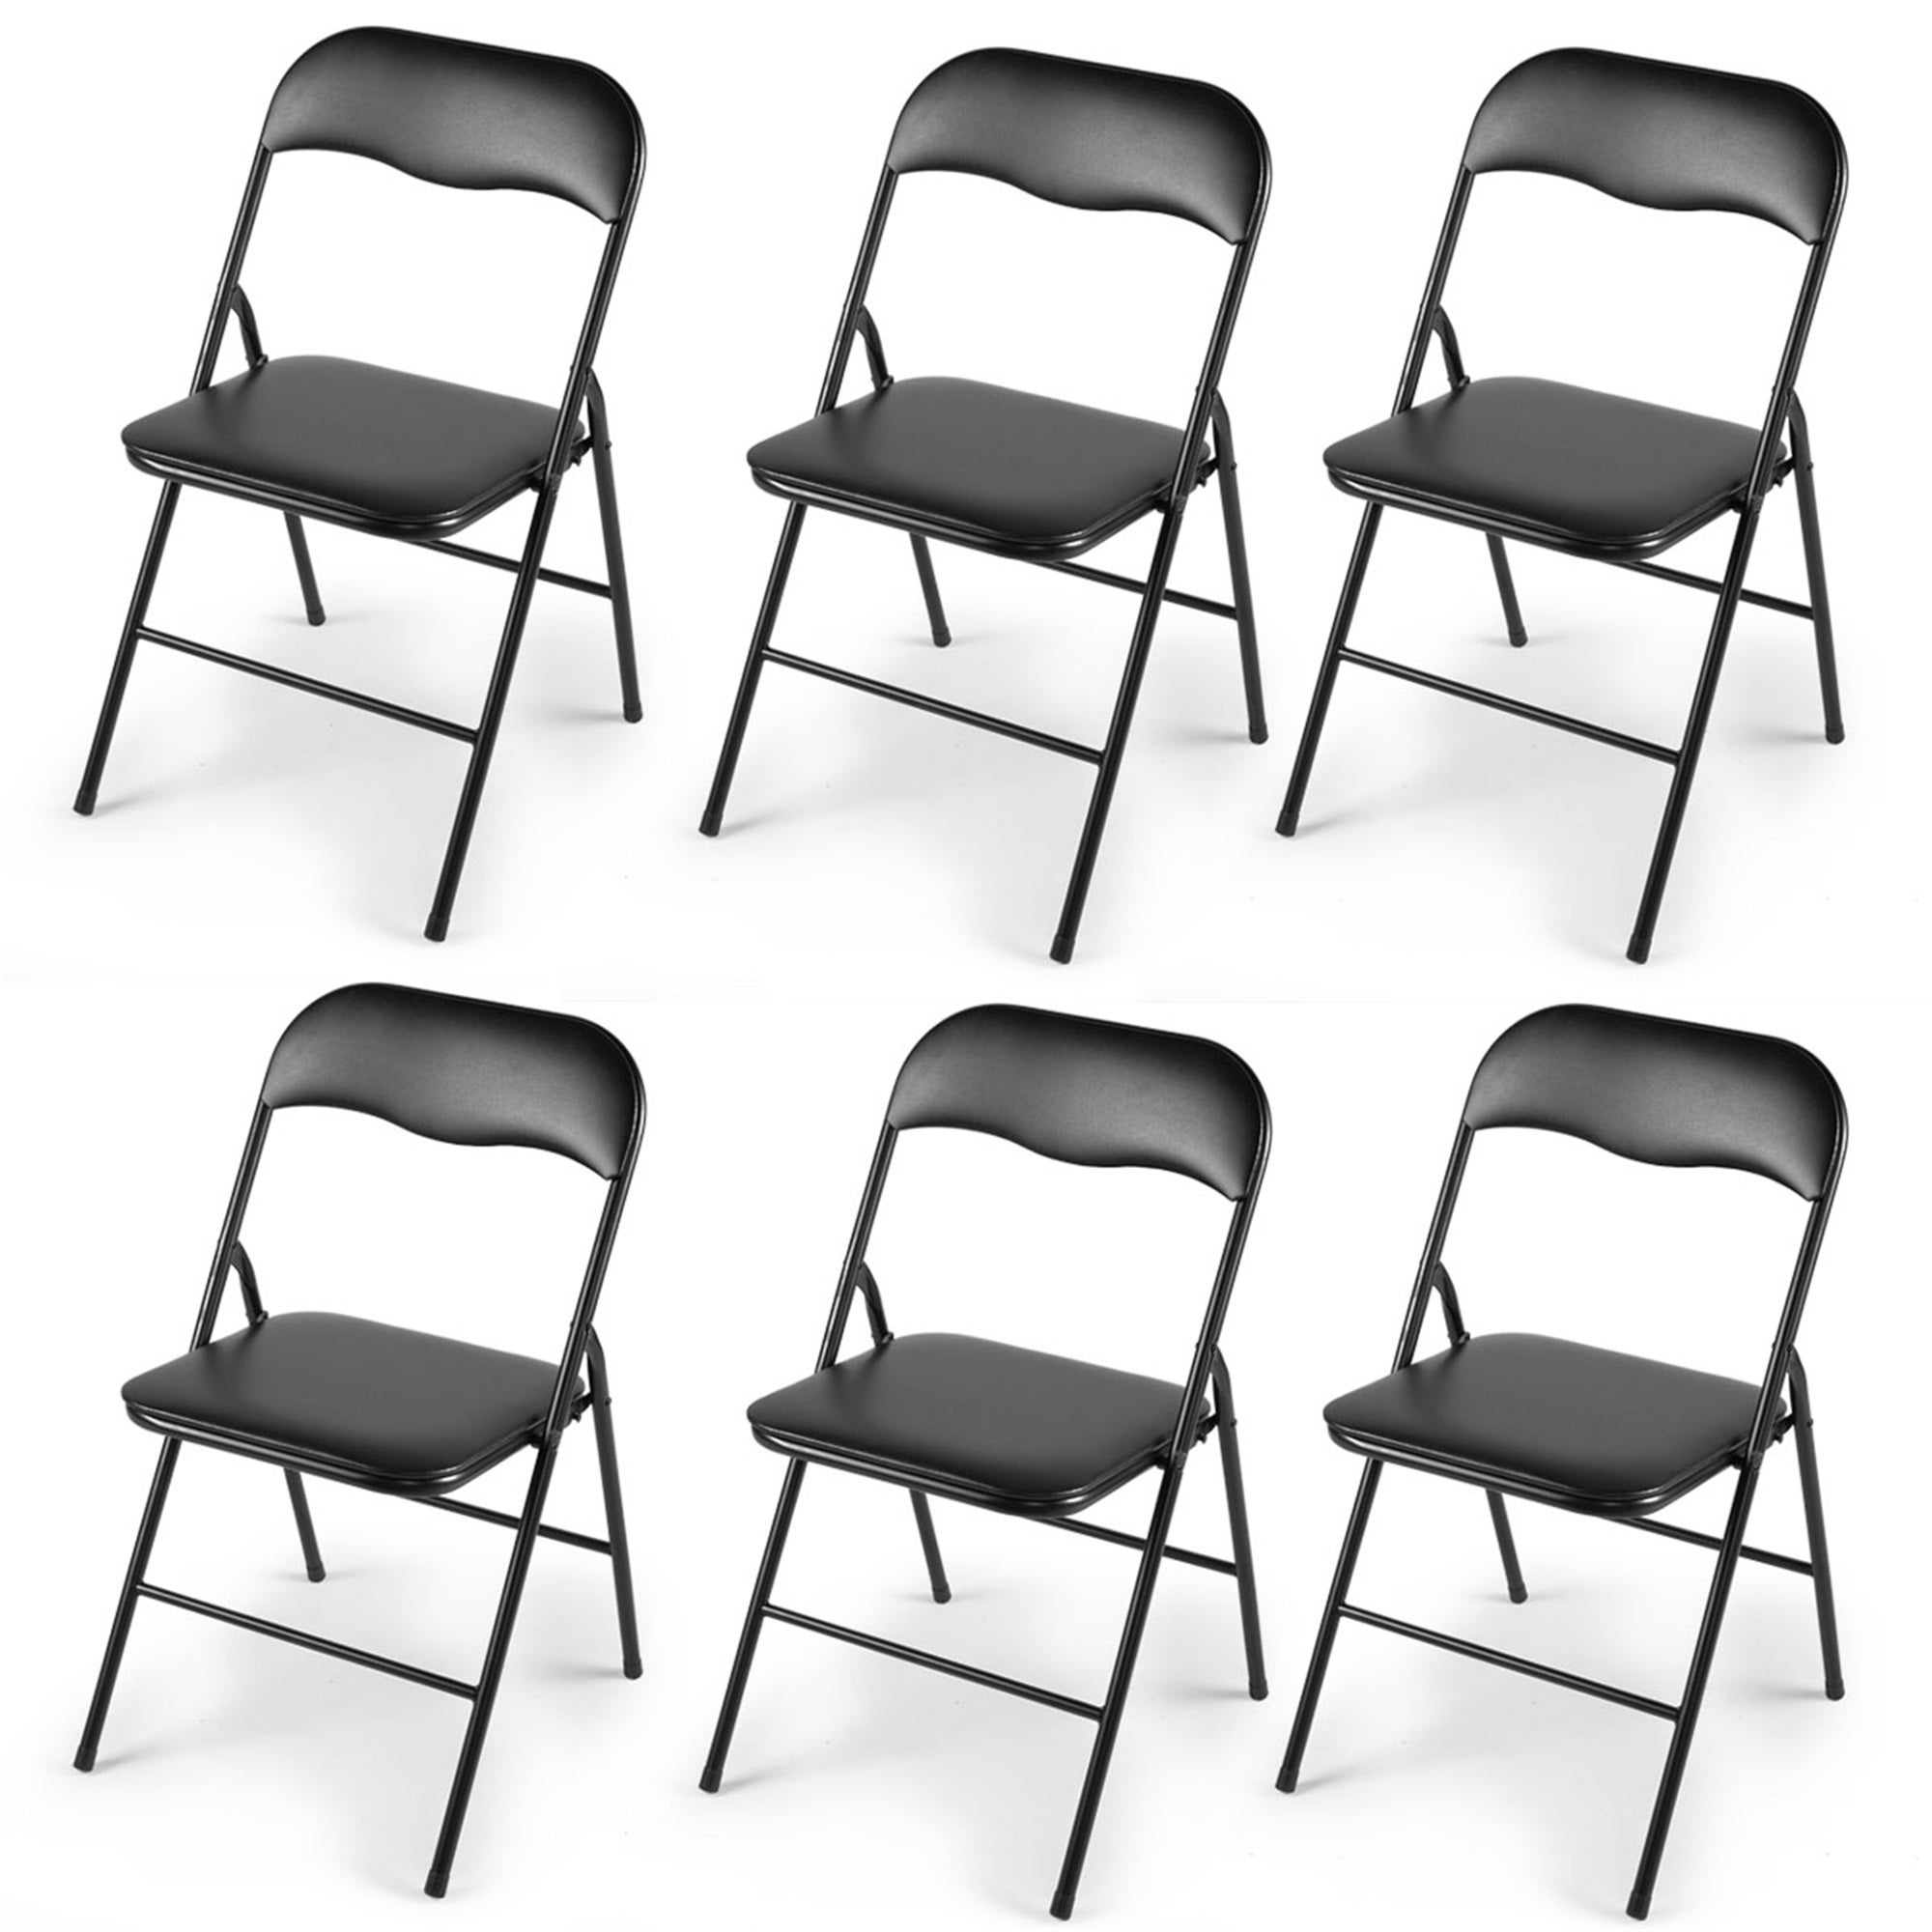 6 Pcs Plastic Folding Chairs Wedding Party Banquet Seat Set Stools On Sale Overstock 31706341